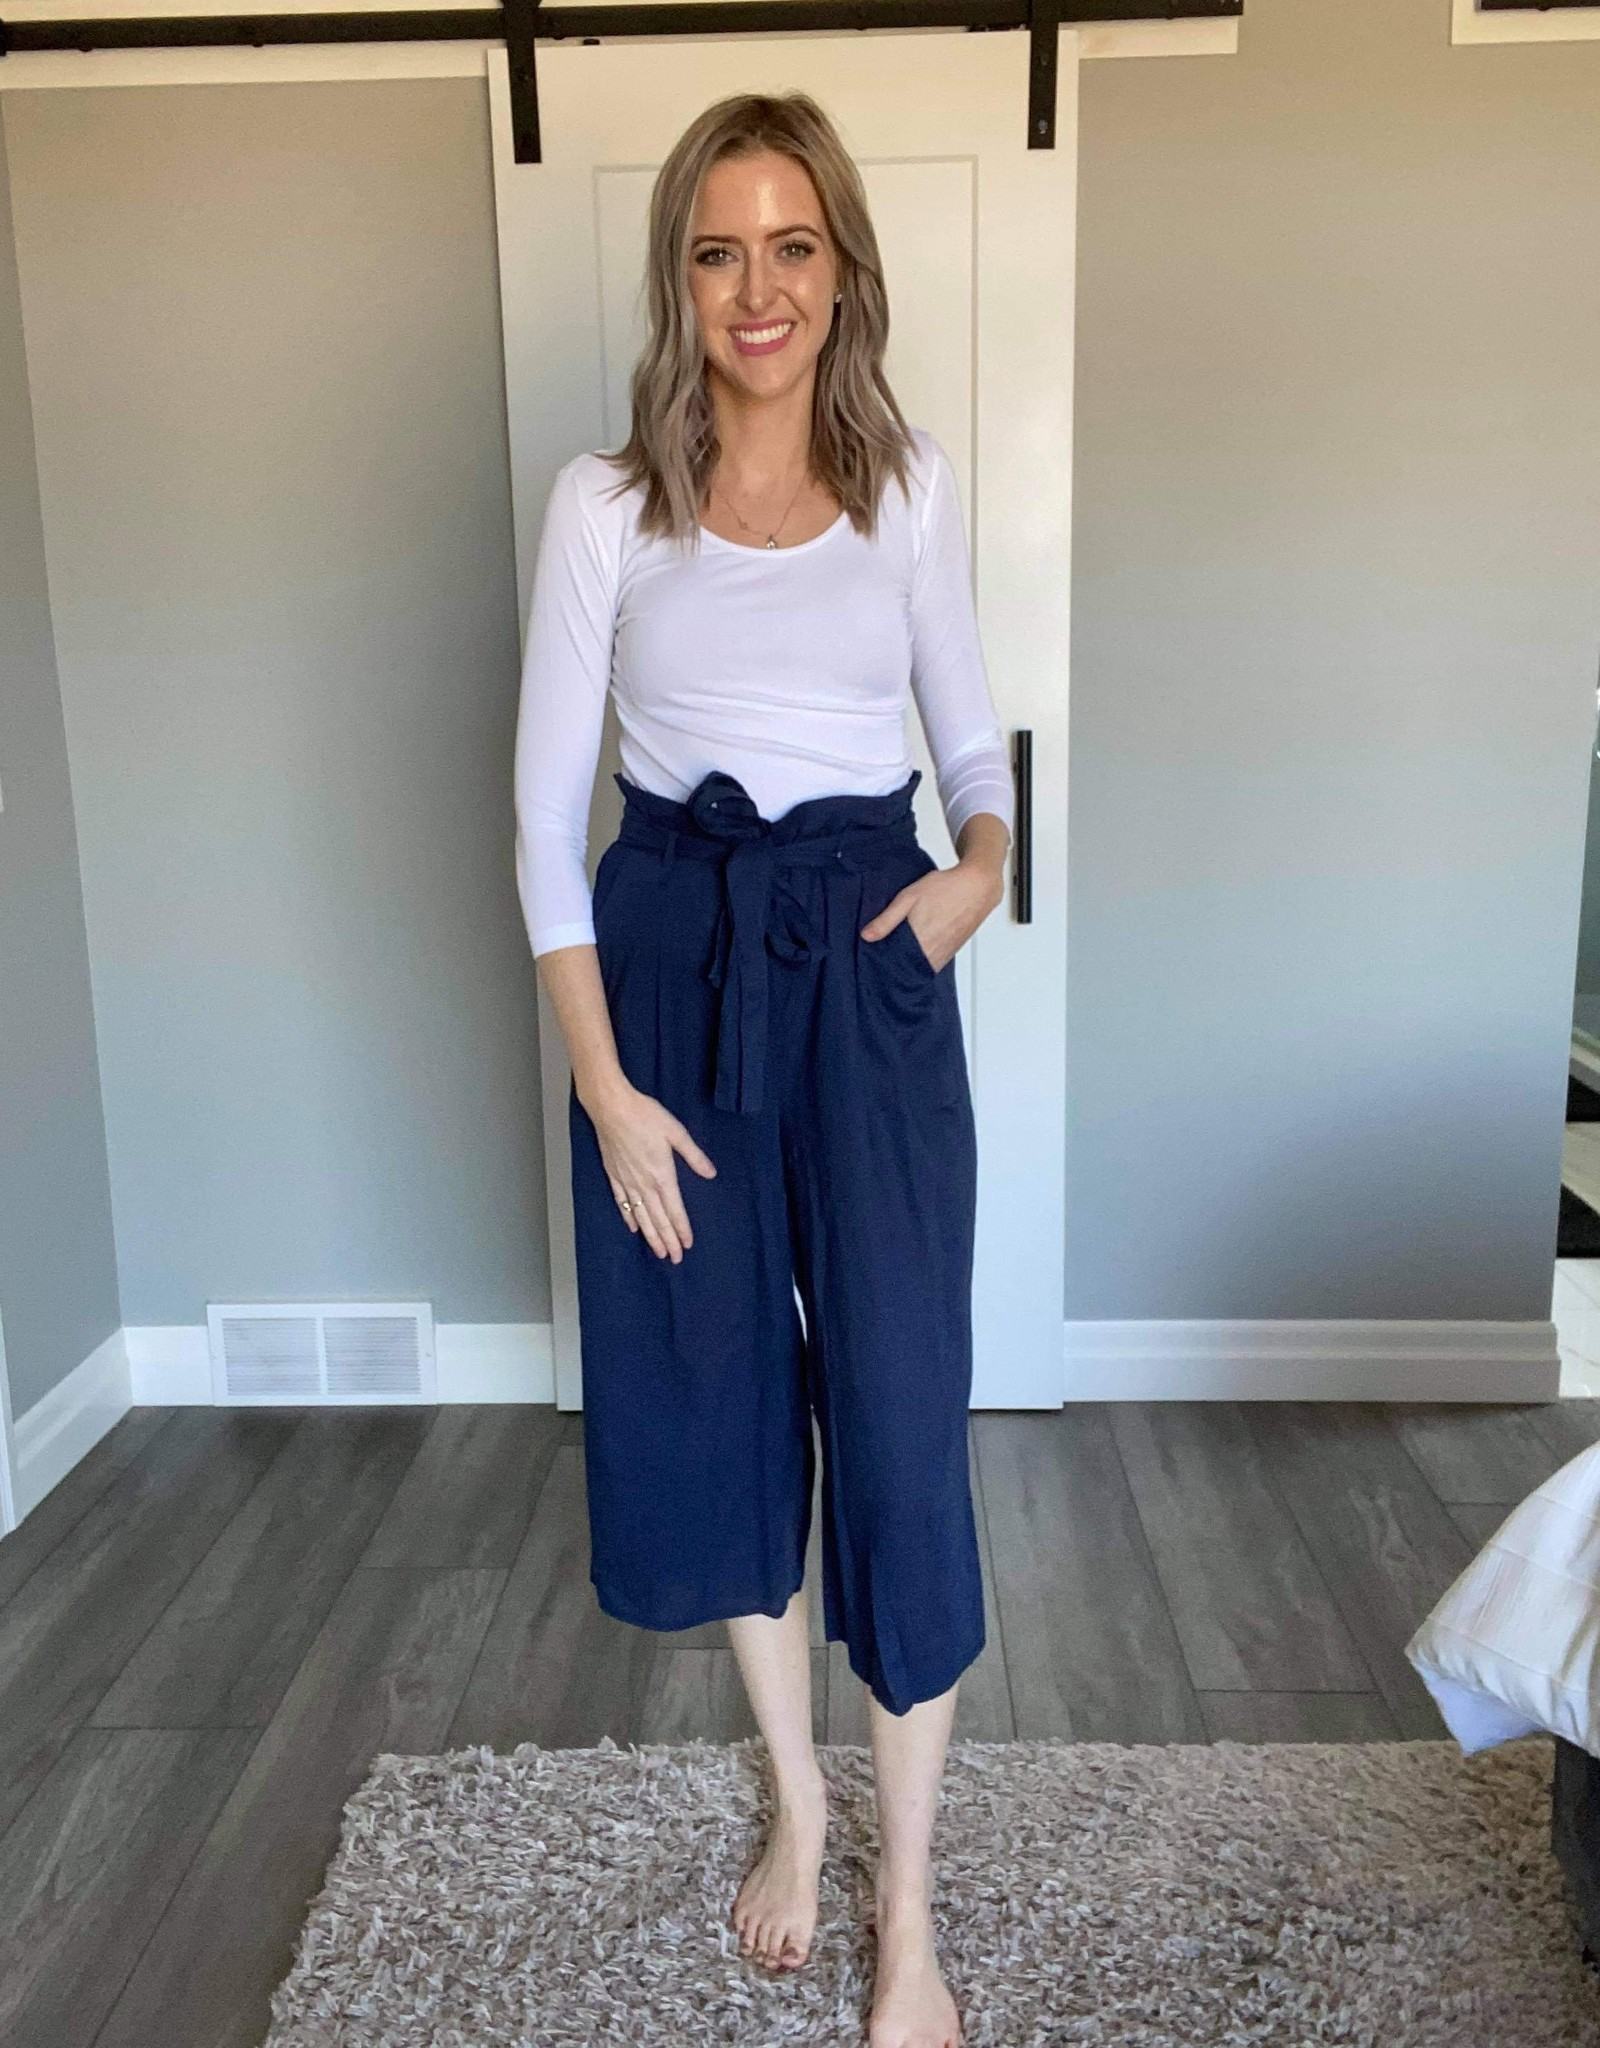 Linen Blend Cropped Pants with Elastic waist